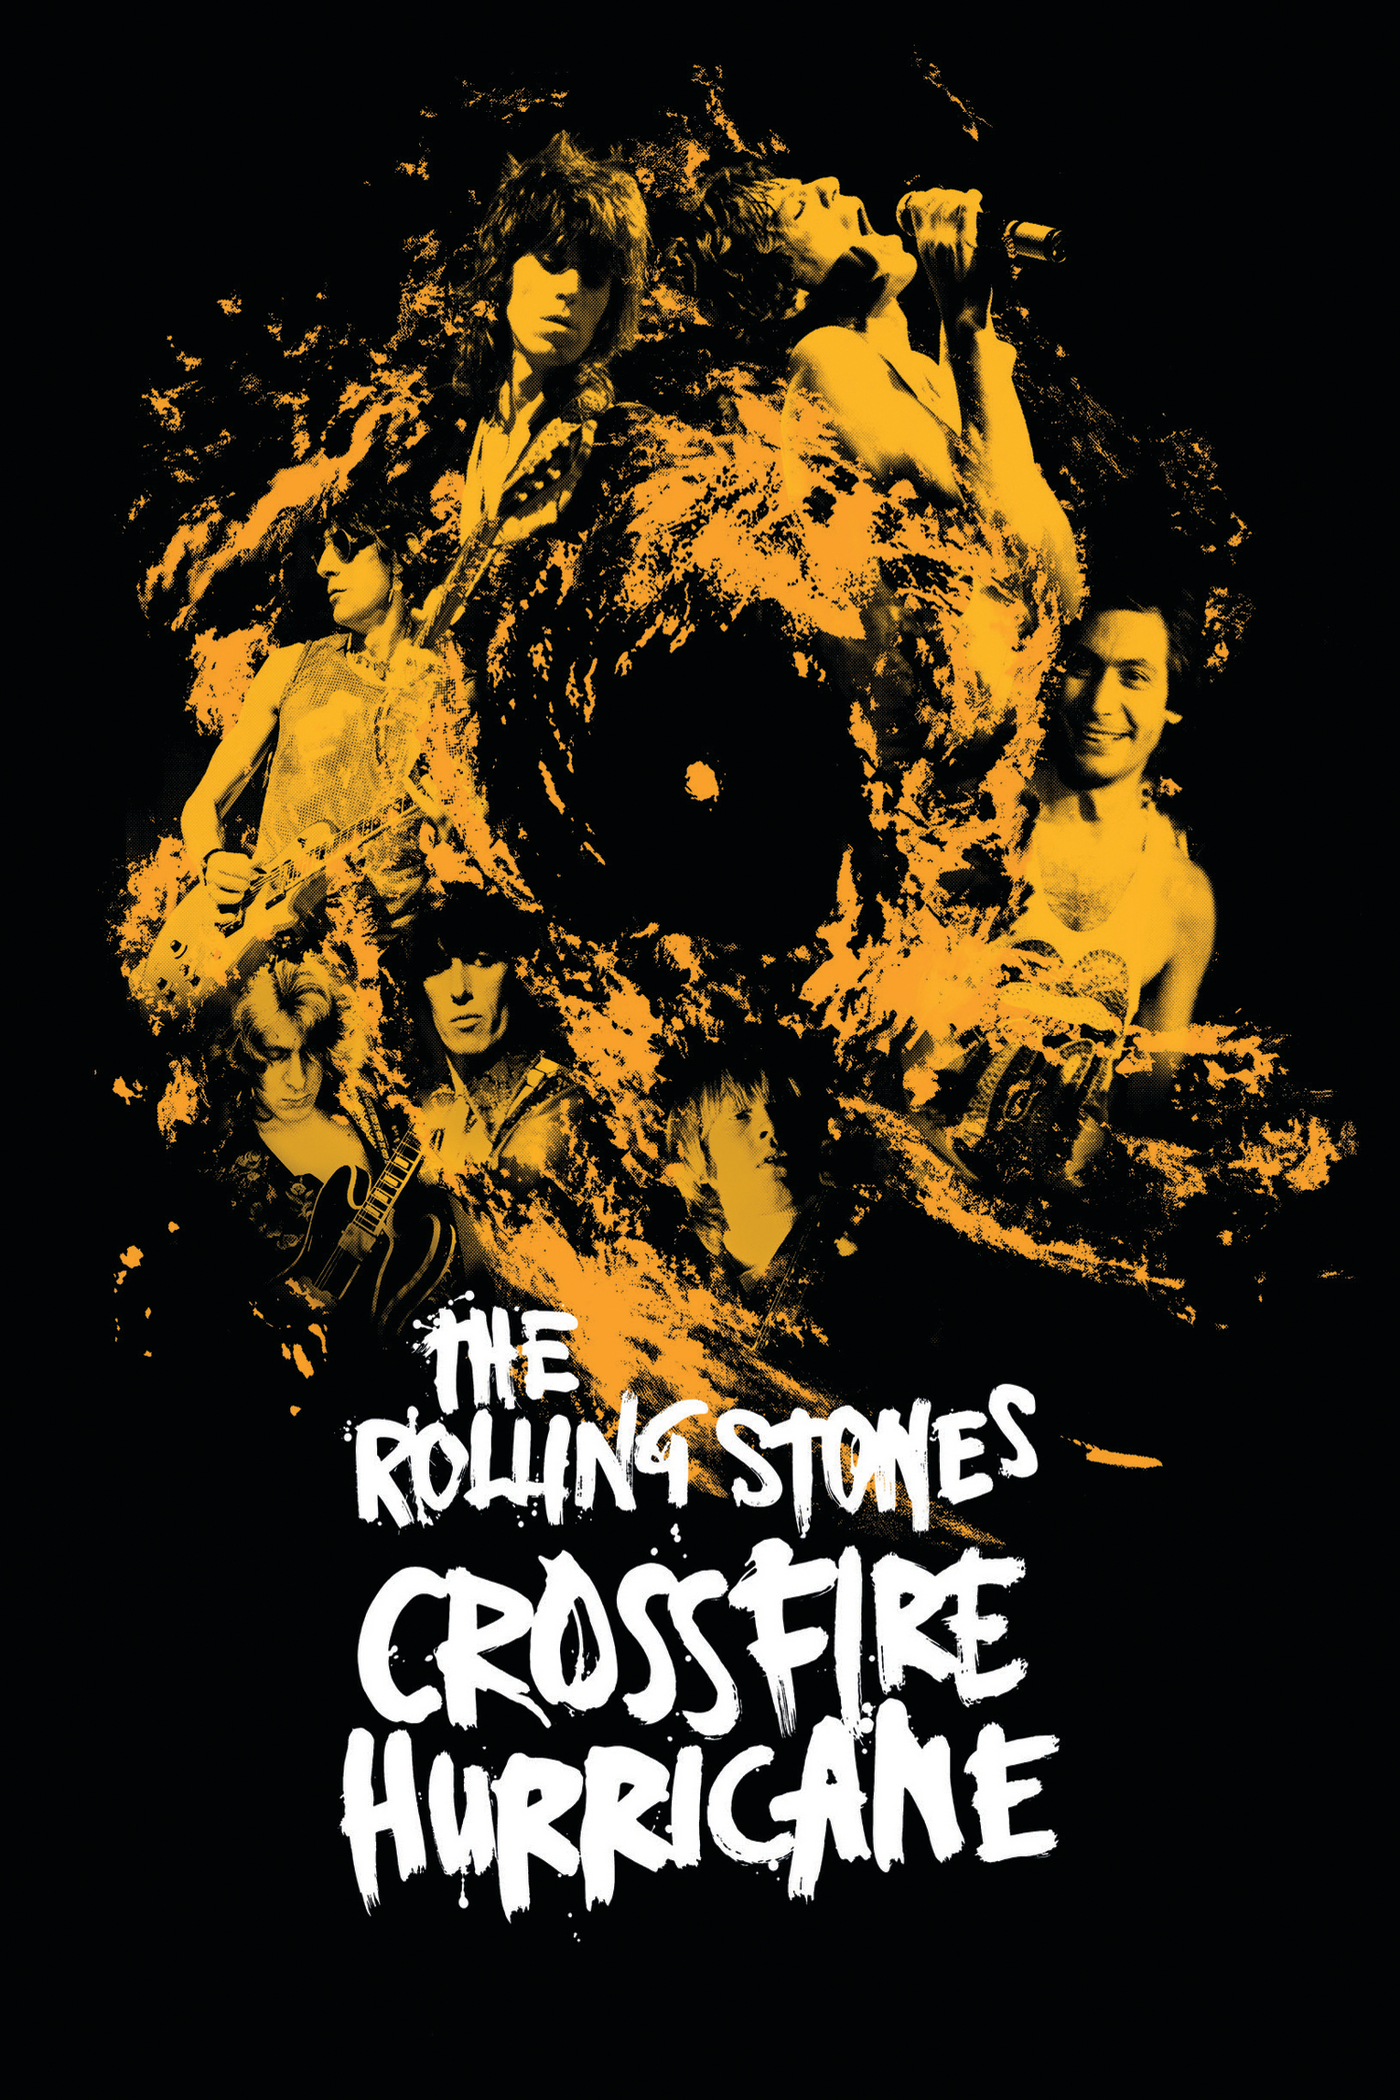 The Rolling Stones: Crossfire Hurricane (2013) [iTunes Movie - HD]